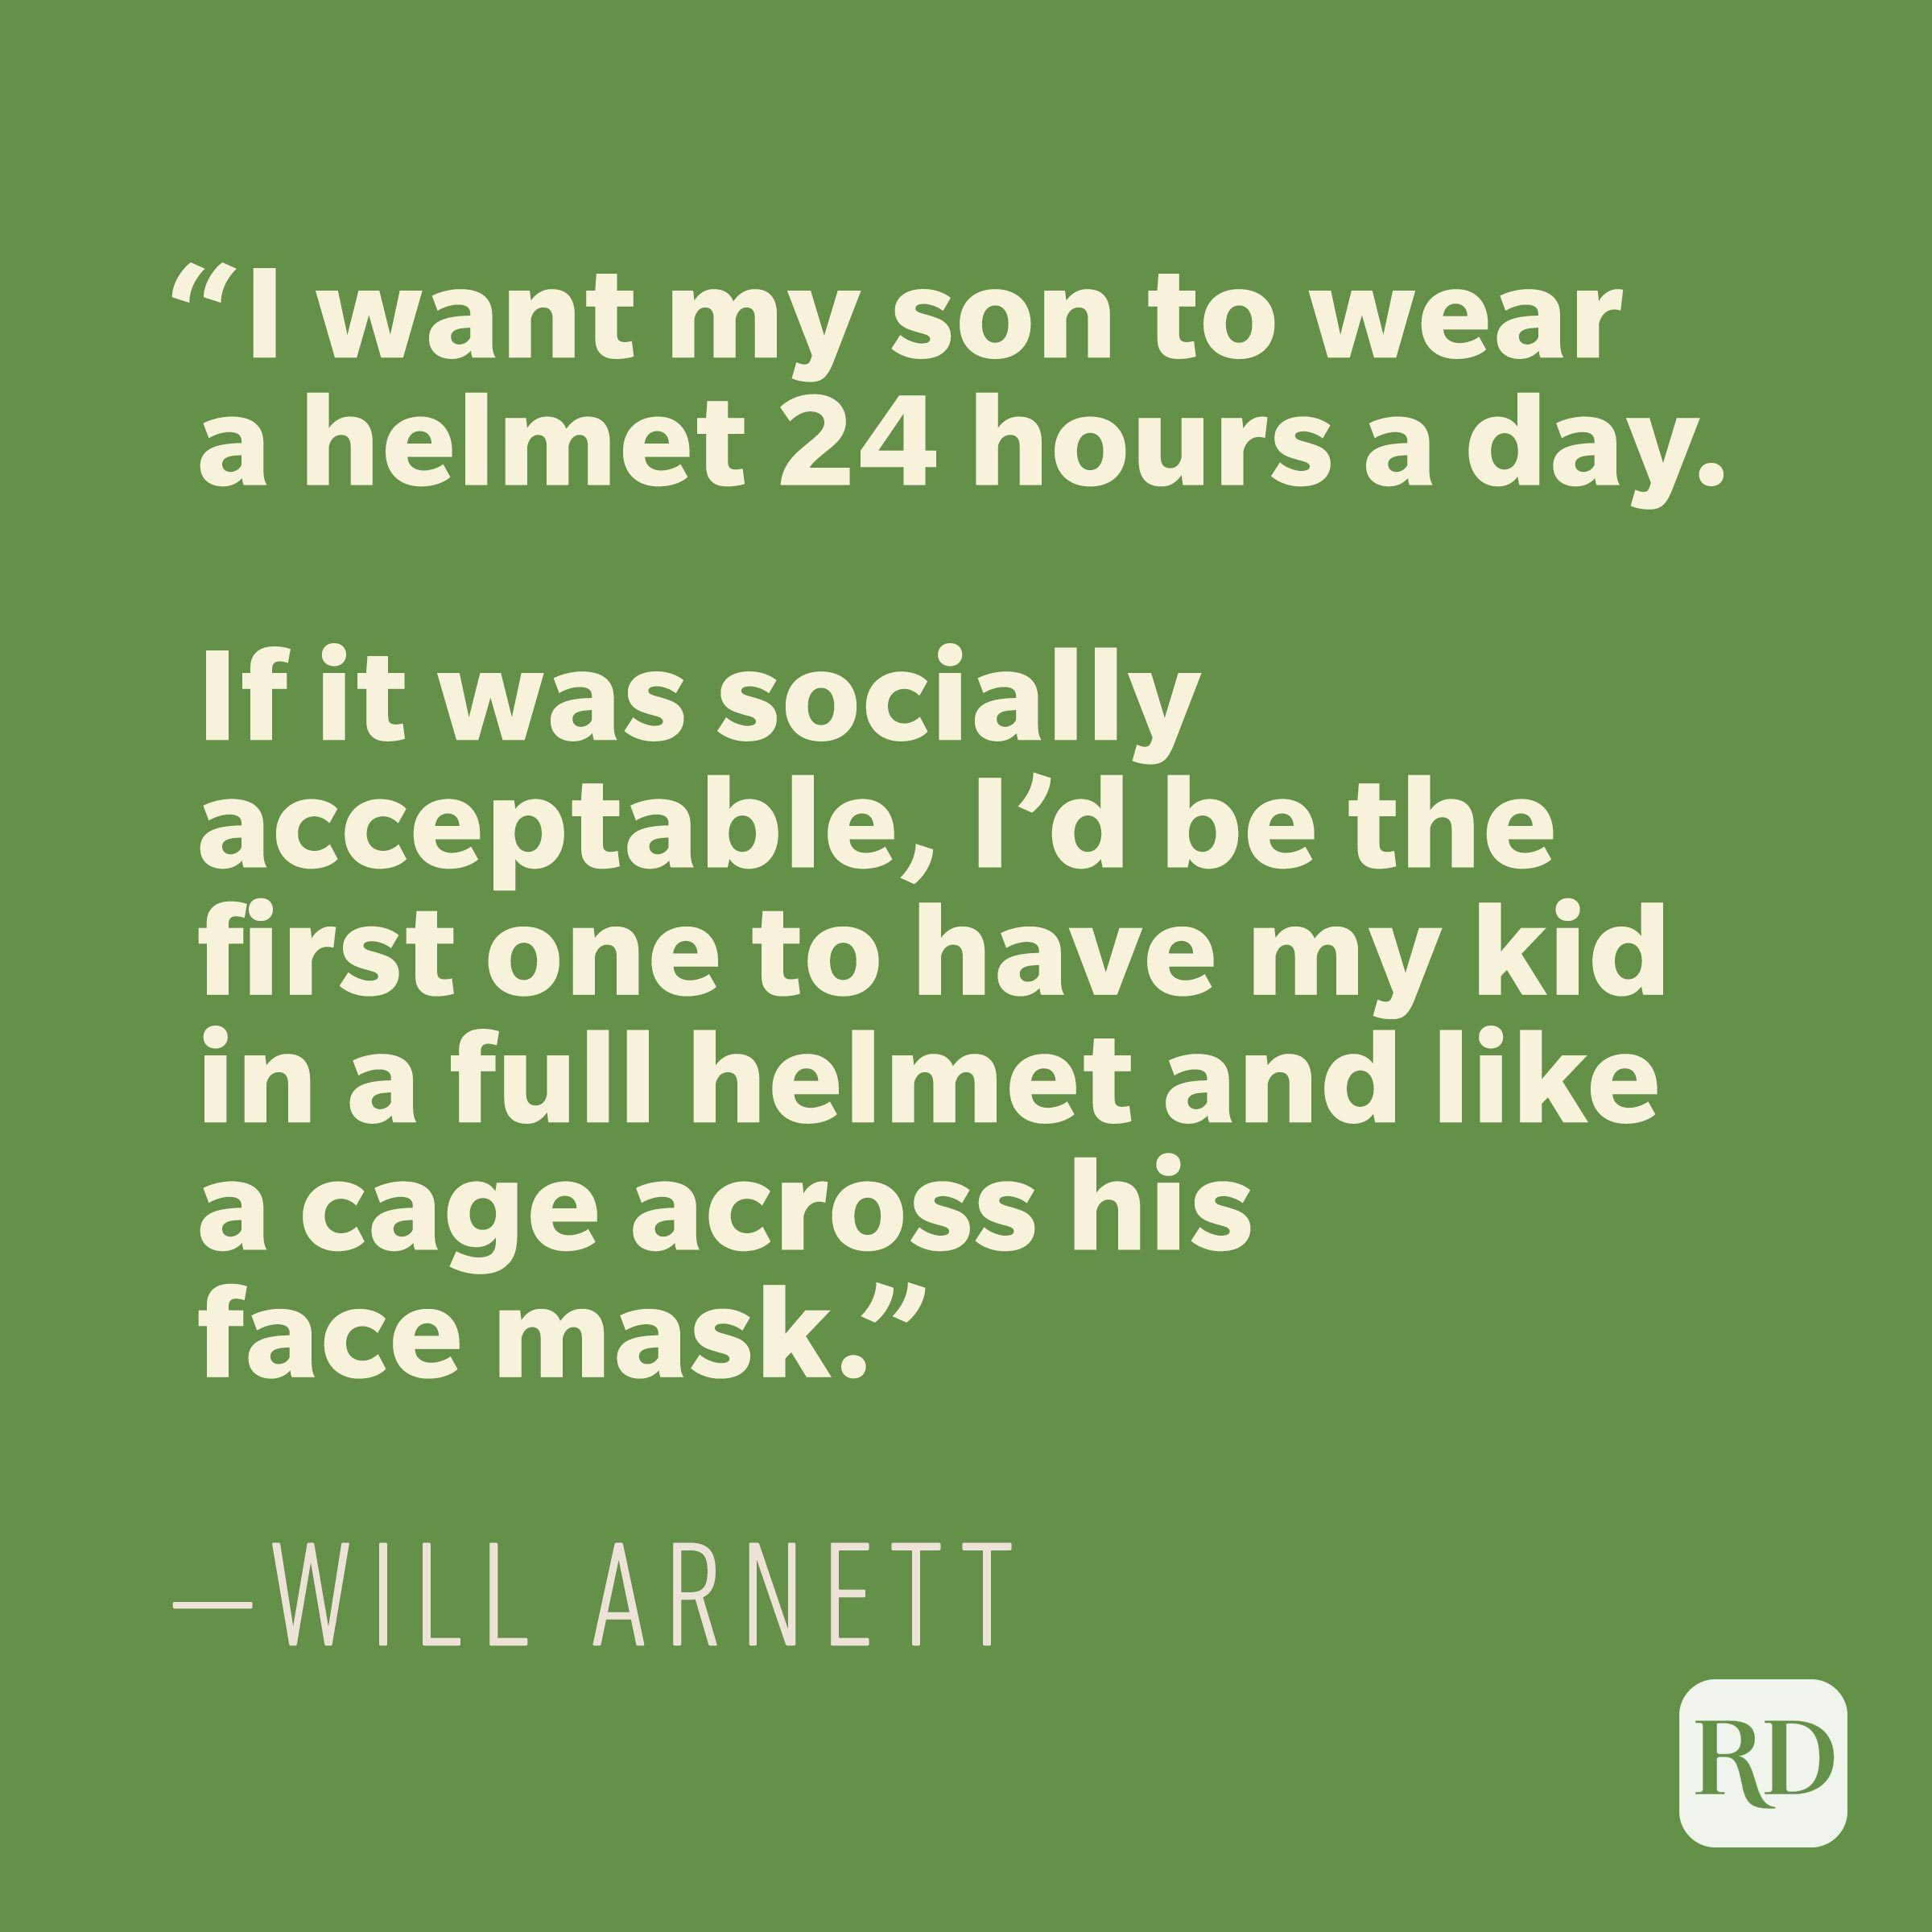 """I want my son to wear a helmet 24 hours a day. If it was socially acceptable, I'd be the first one to have my kid in a full helmet and like a cage across his face mask."" -WILL ARNETT"